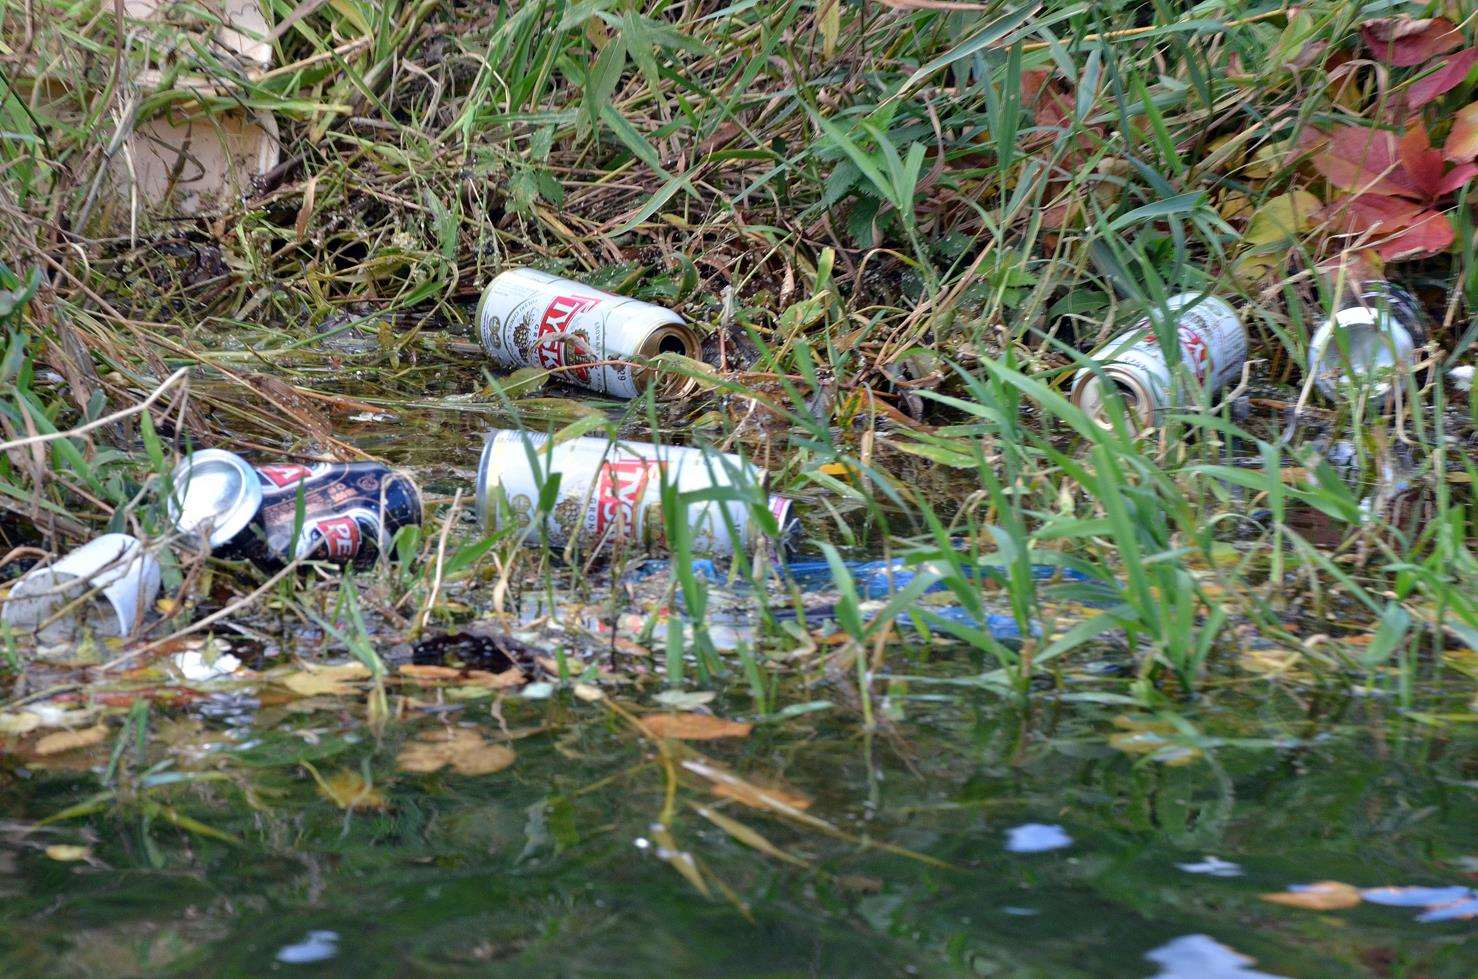 Beer cans abandoned in the river (5050592)